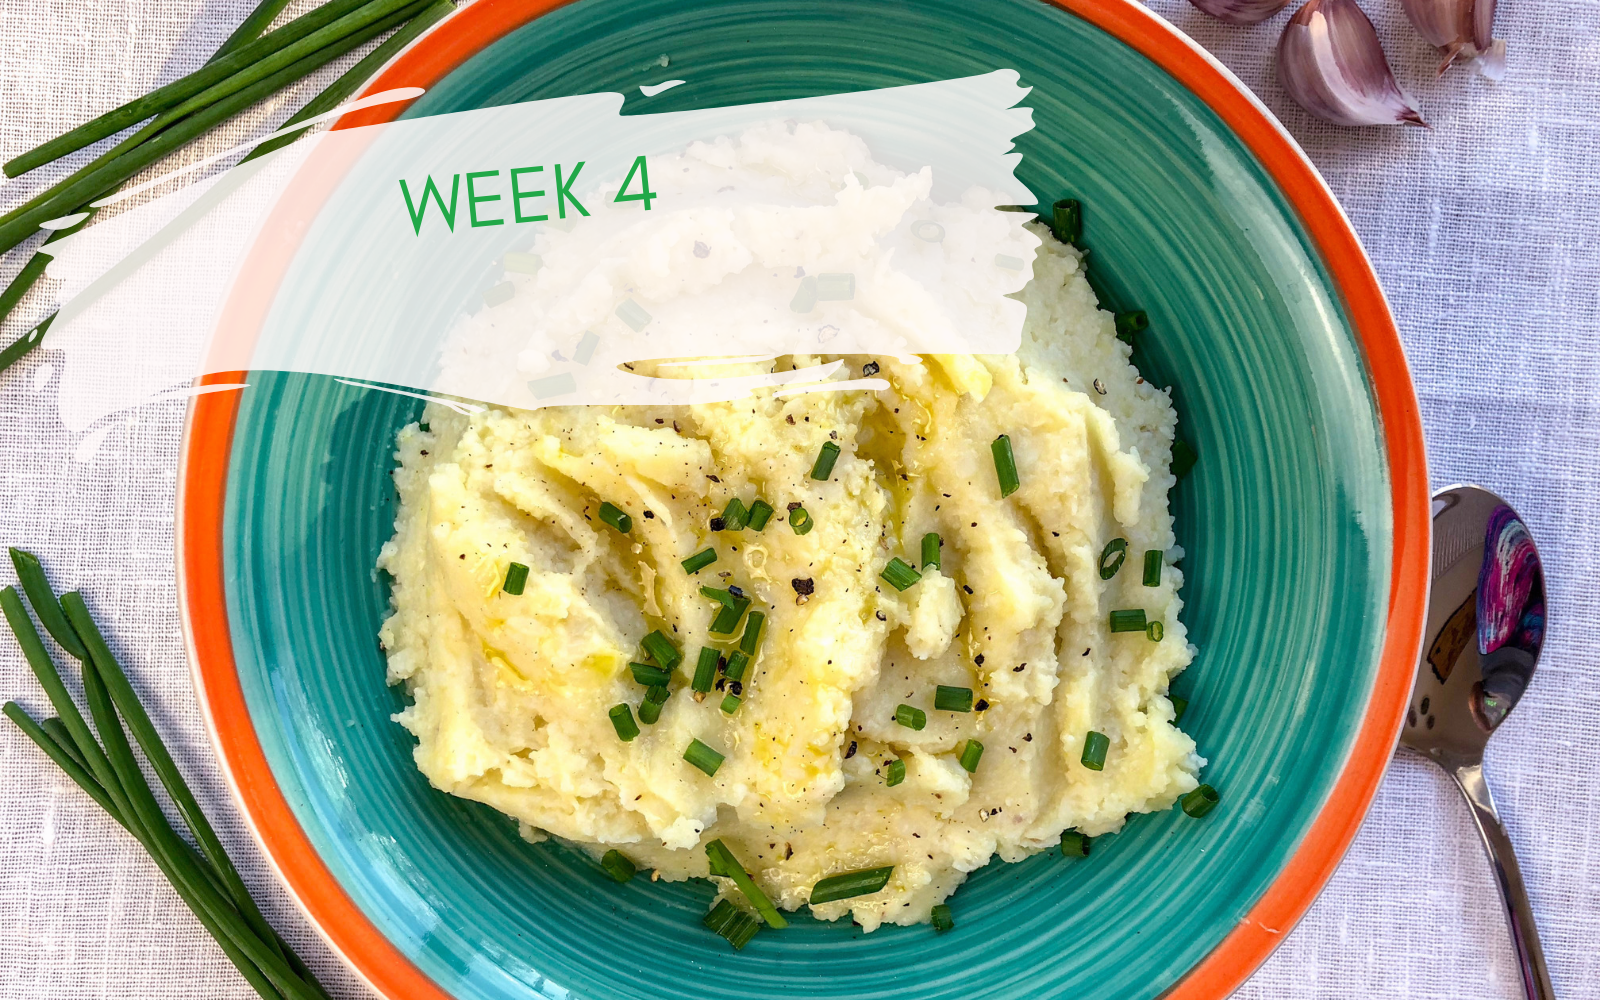 Week 4 Recipes